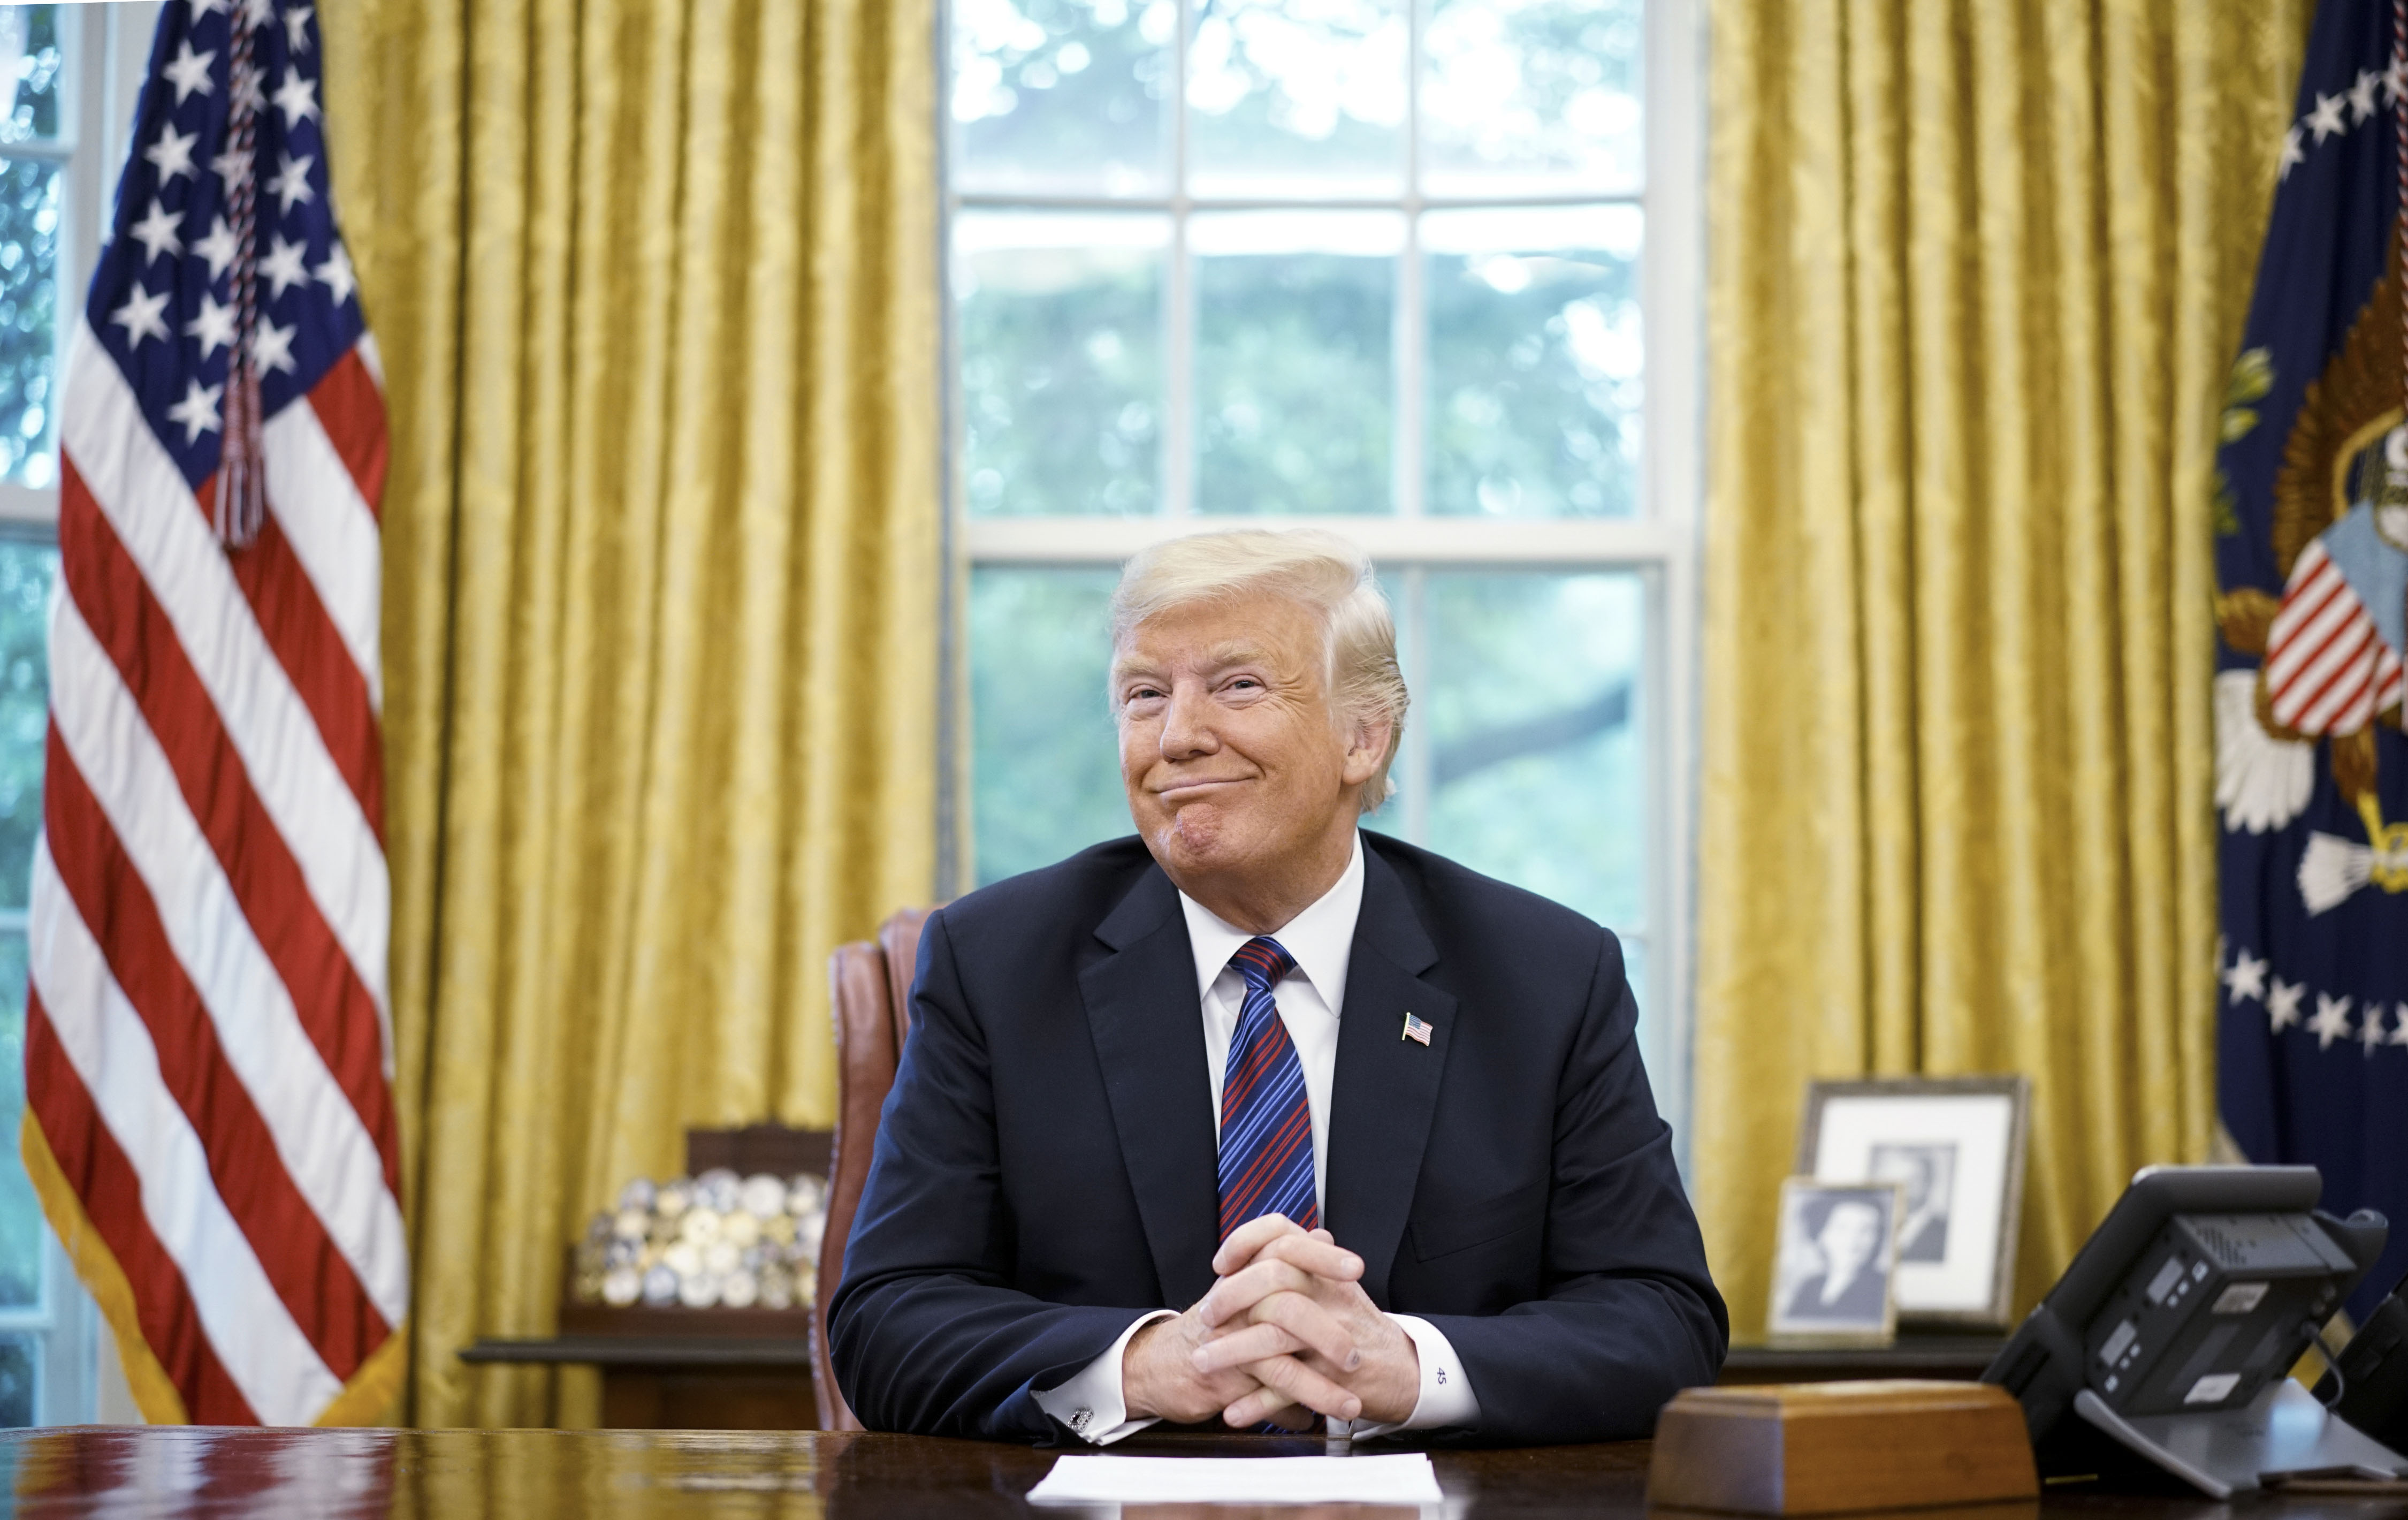 The bill comes after Donald Trump threatened to veto and rejected coronavirus stimulus package that would have given Americans $600, demanding $2,000 payments instead